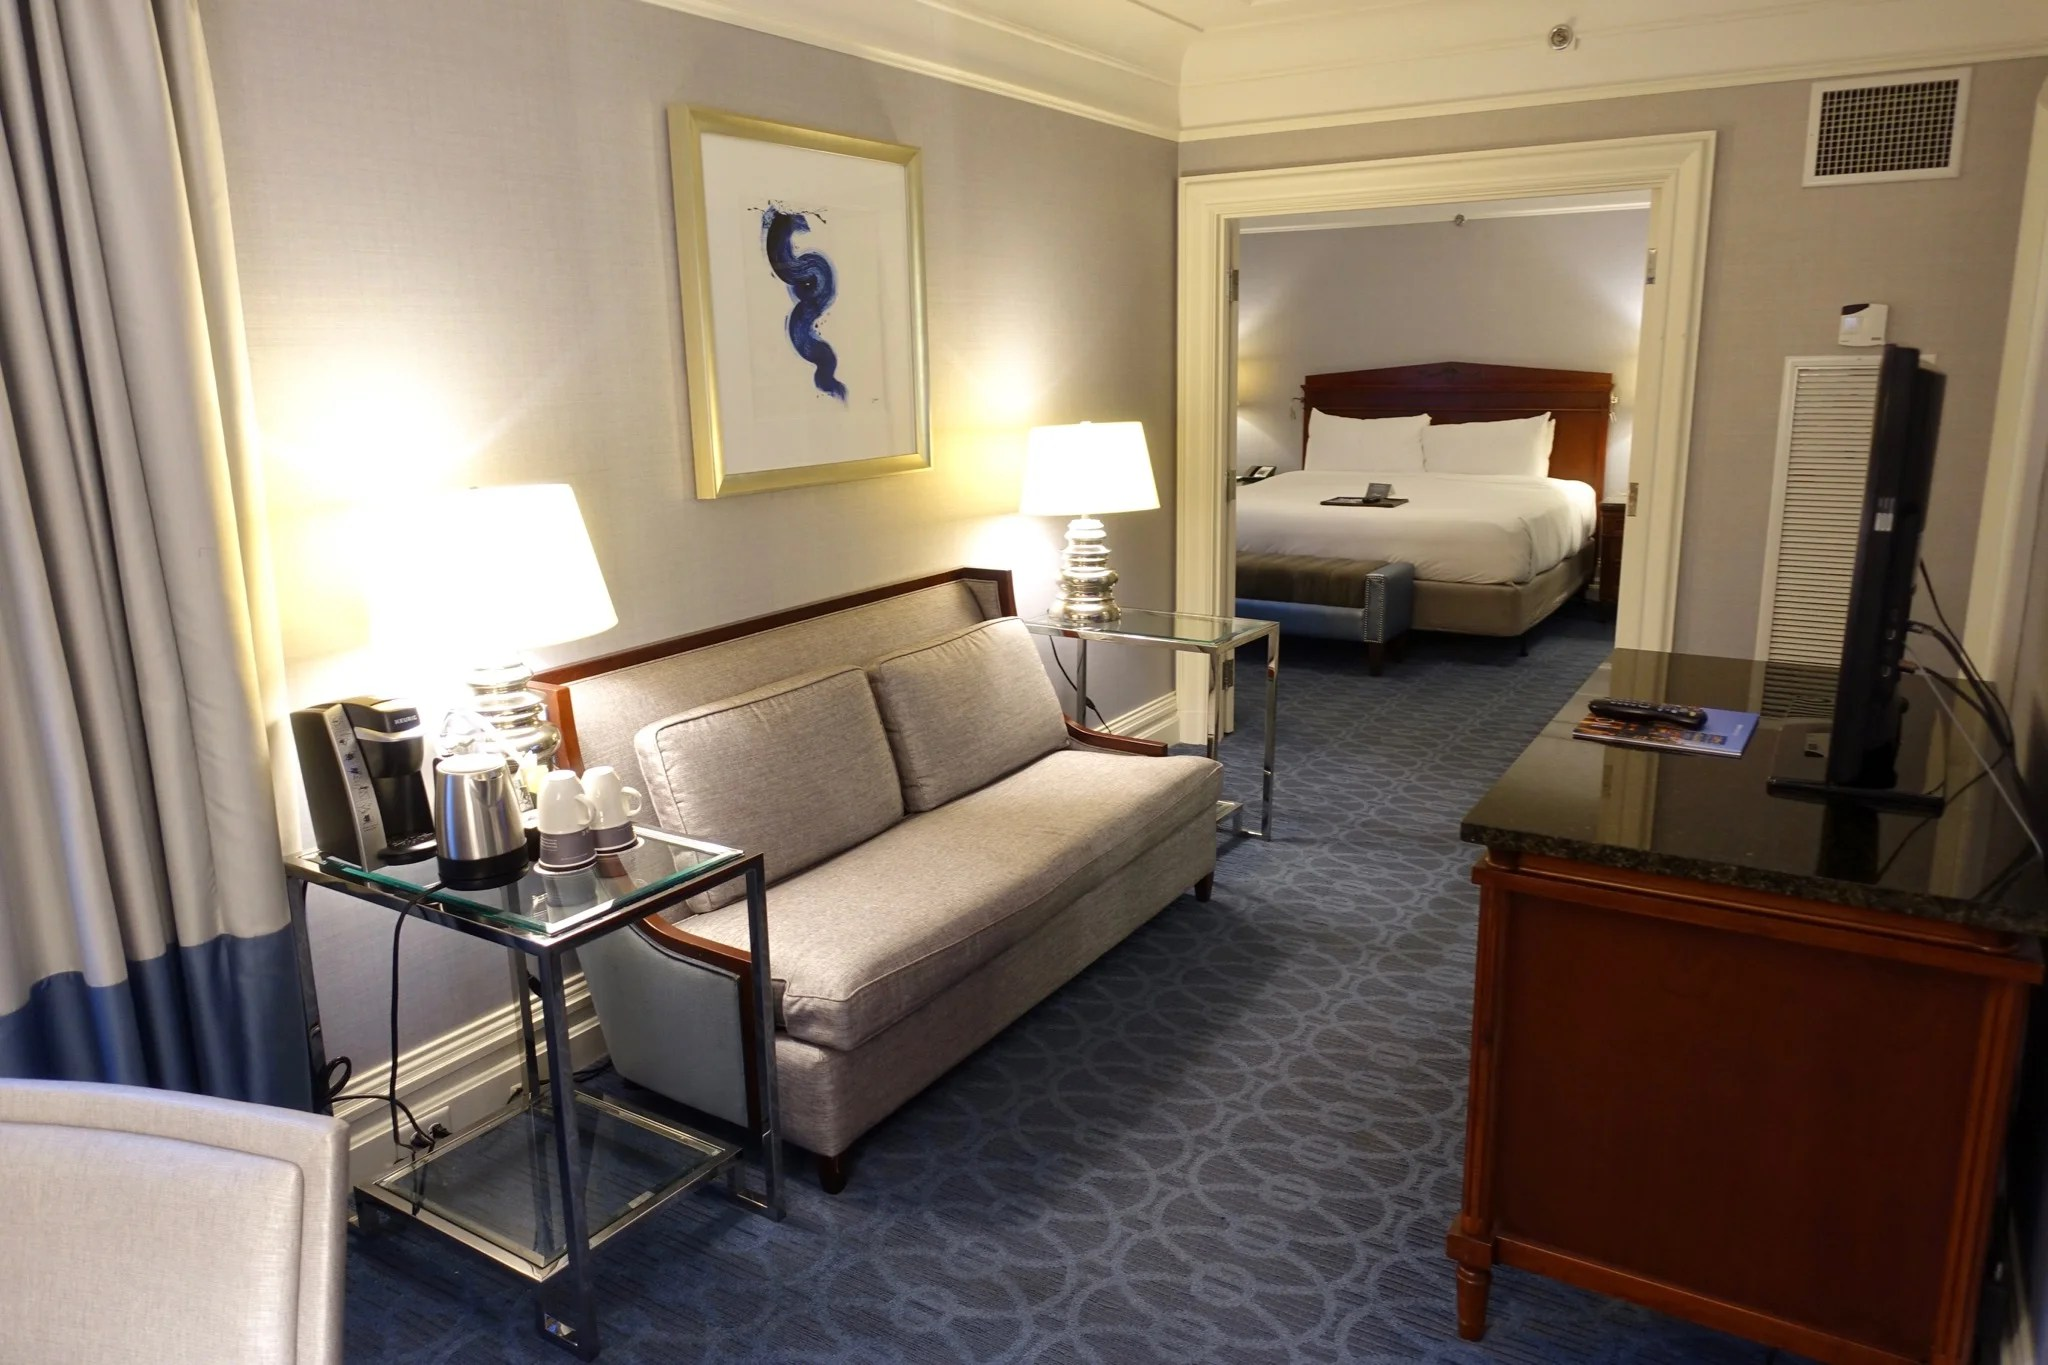 Astounding A Review Of The Fairmont Copley Plaza In Boston Massachusetts Pabps2019 Chair Design Images Pabps2019Com